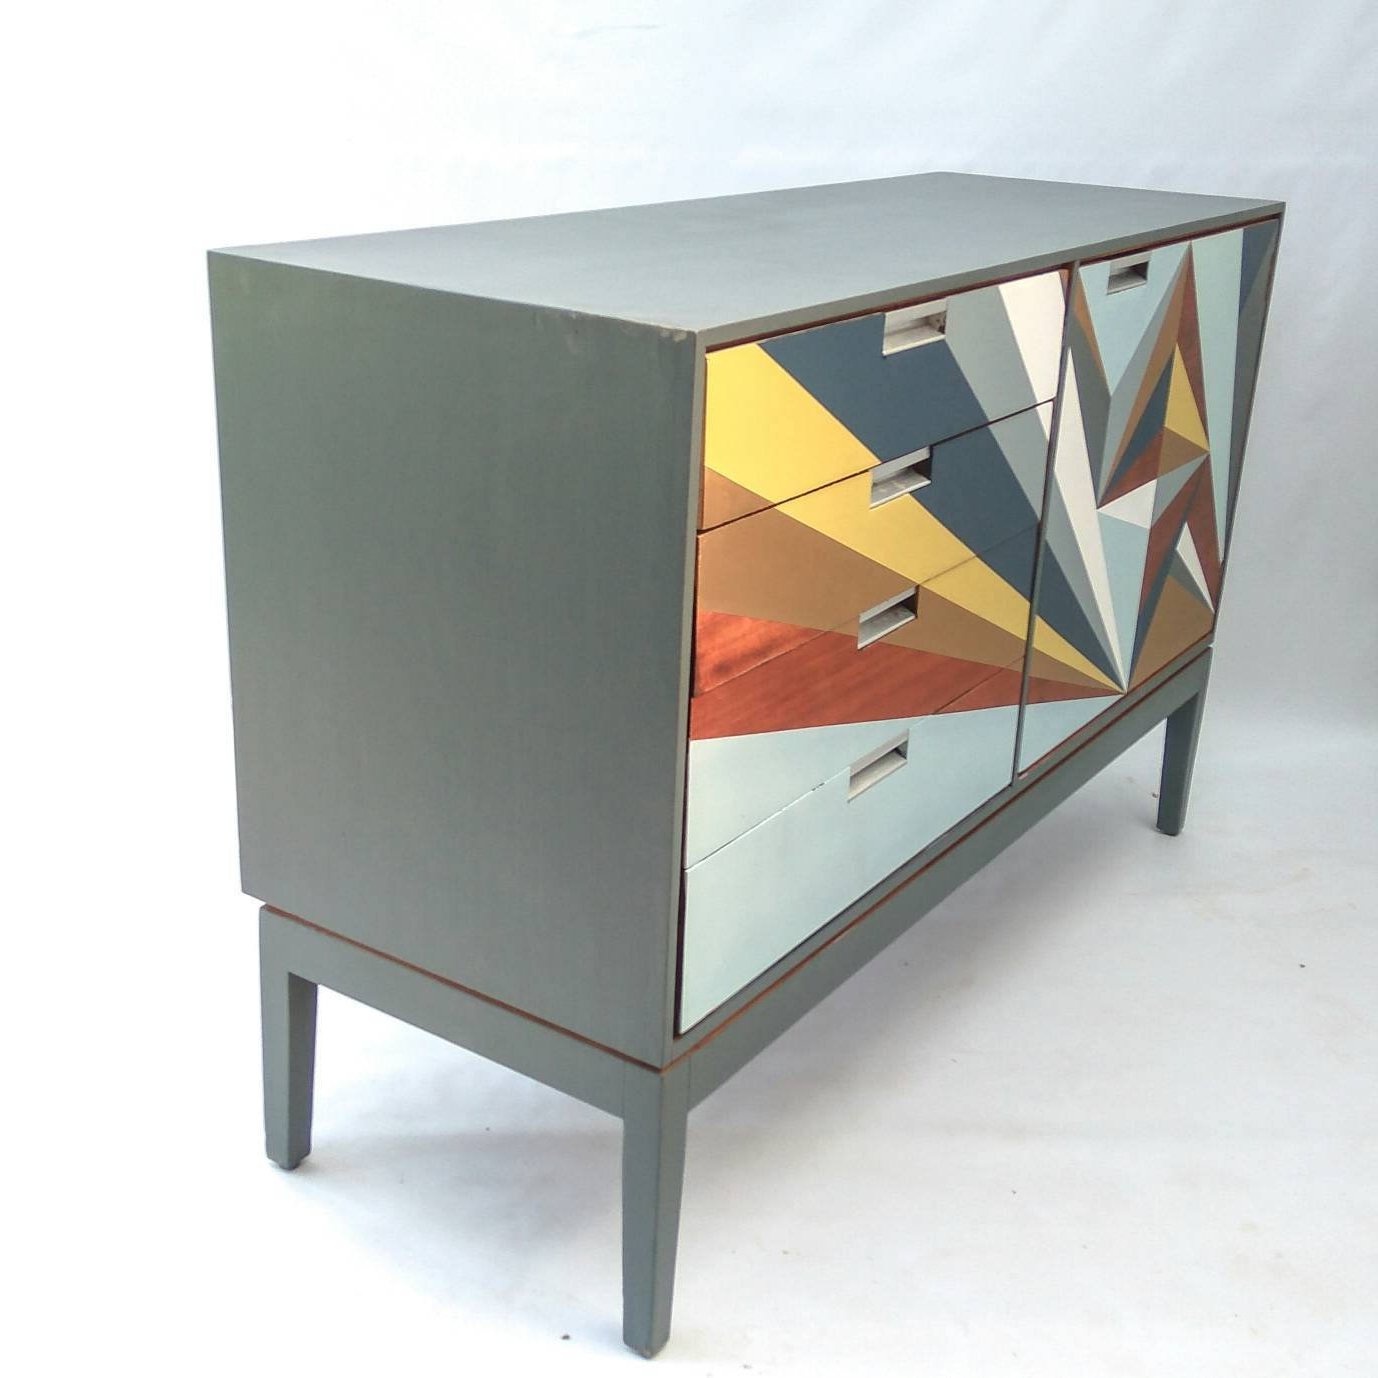 Retro Sideboard Geometric Handpainted Mid Centuryteak Buffet Intended For White Geometric Buffets (View 17 of 20)